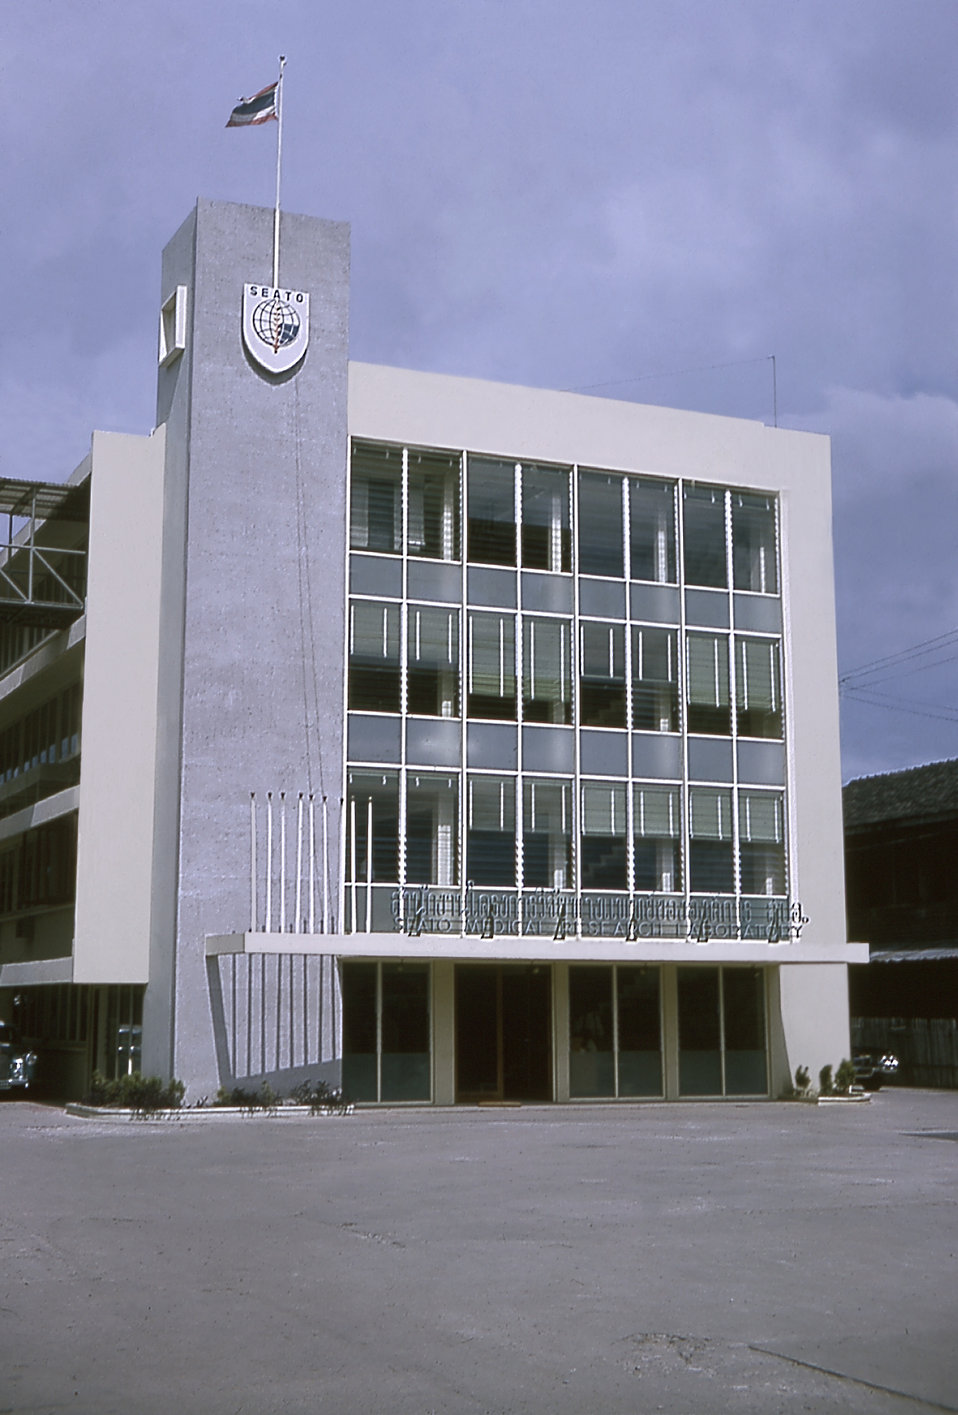 This is the South East Asia Treaty Organization Medical Research Laboratory in Bangkok, Thailand as it appeared in 1964.